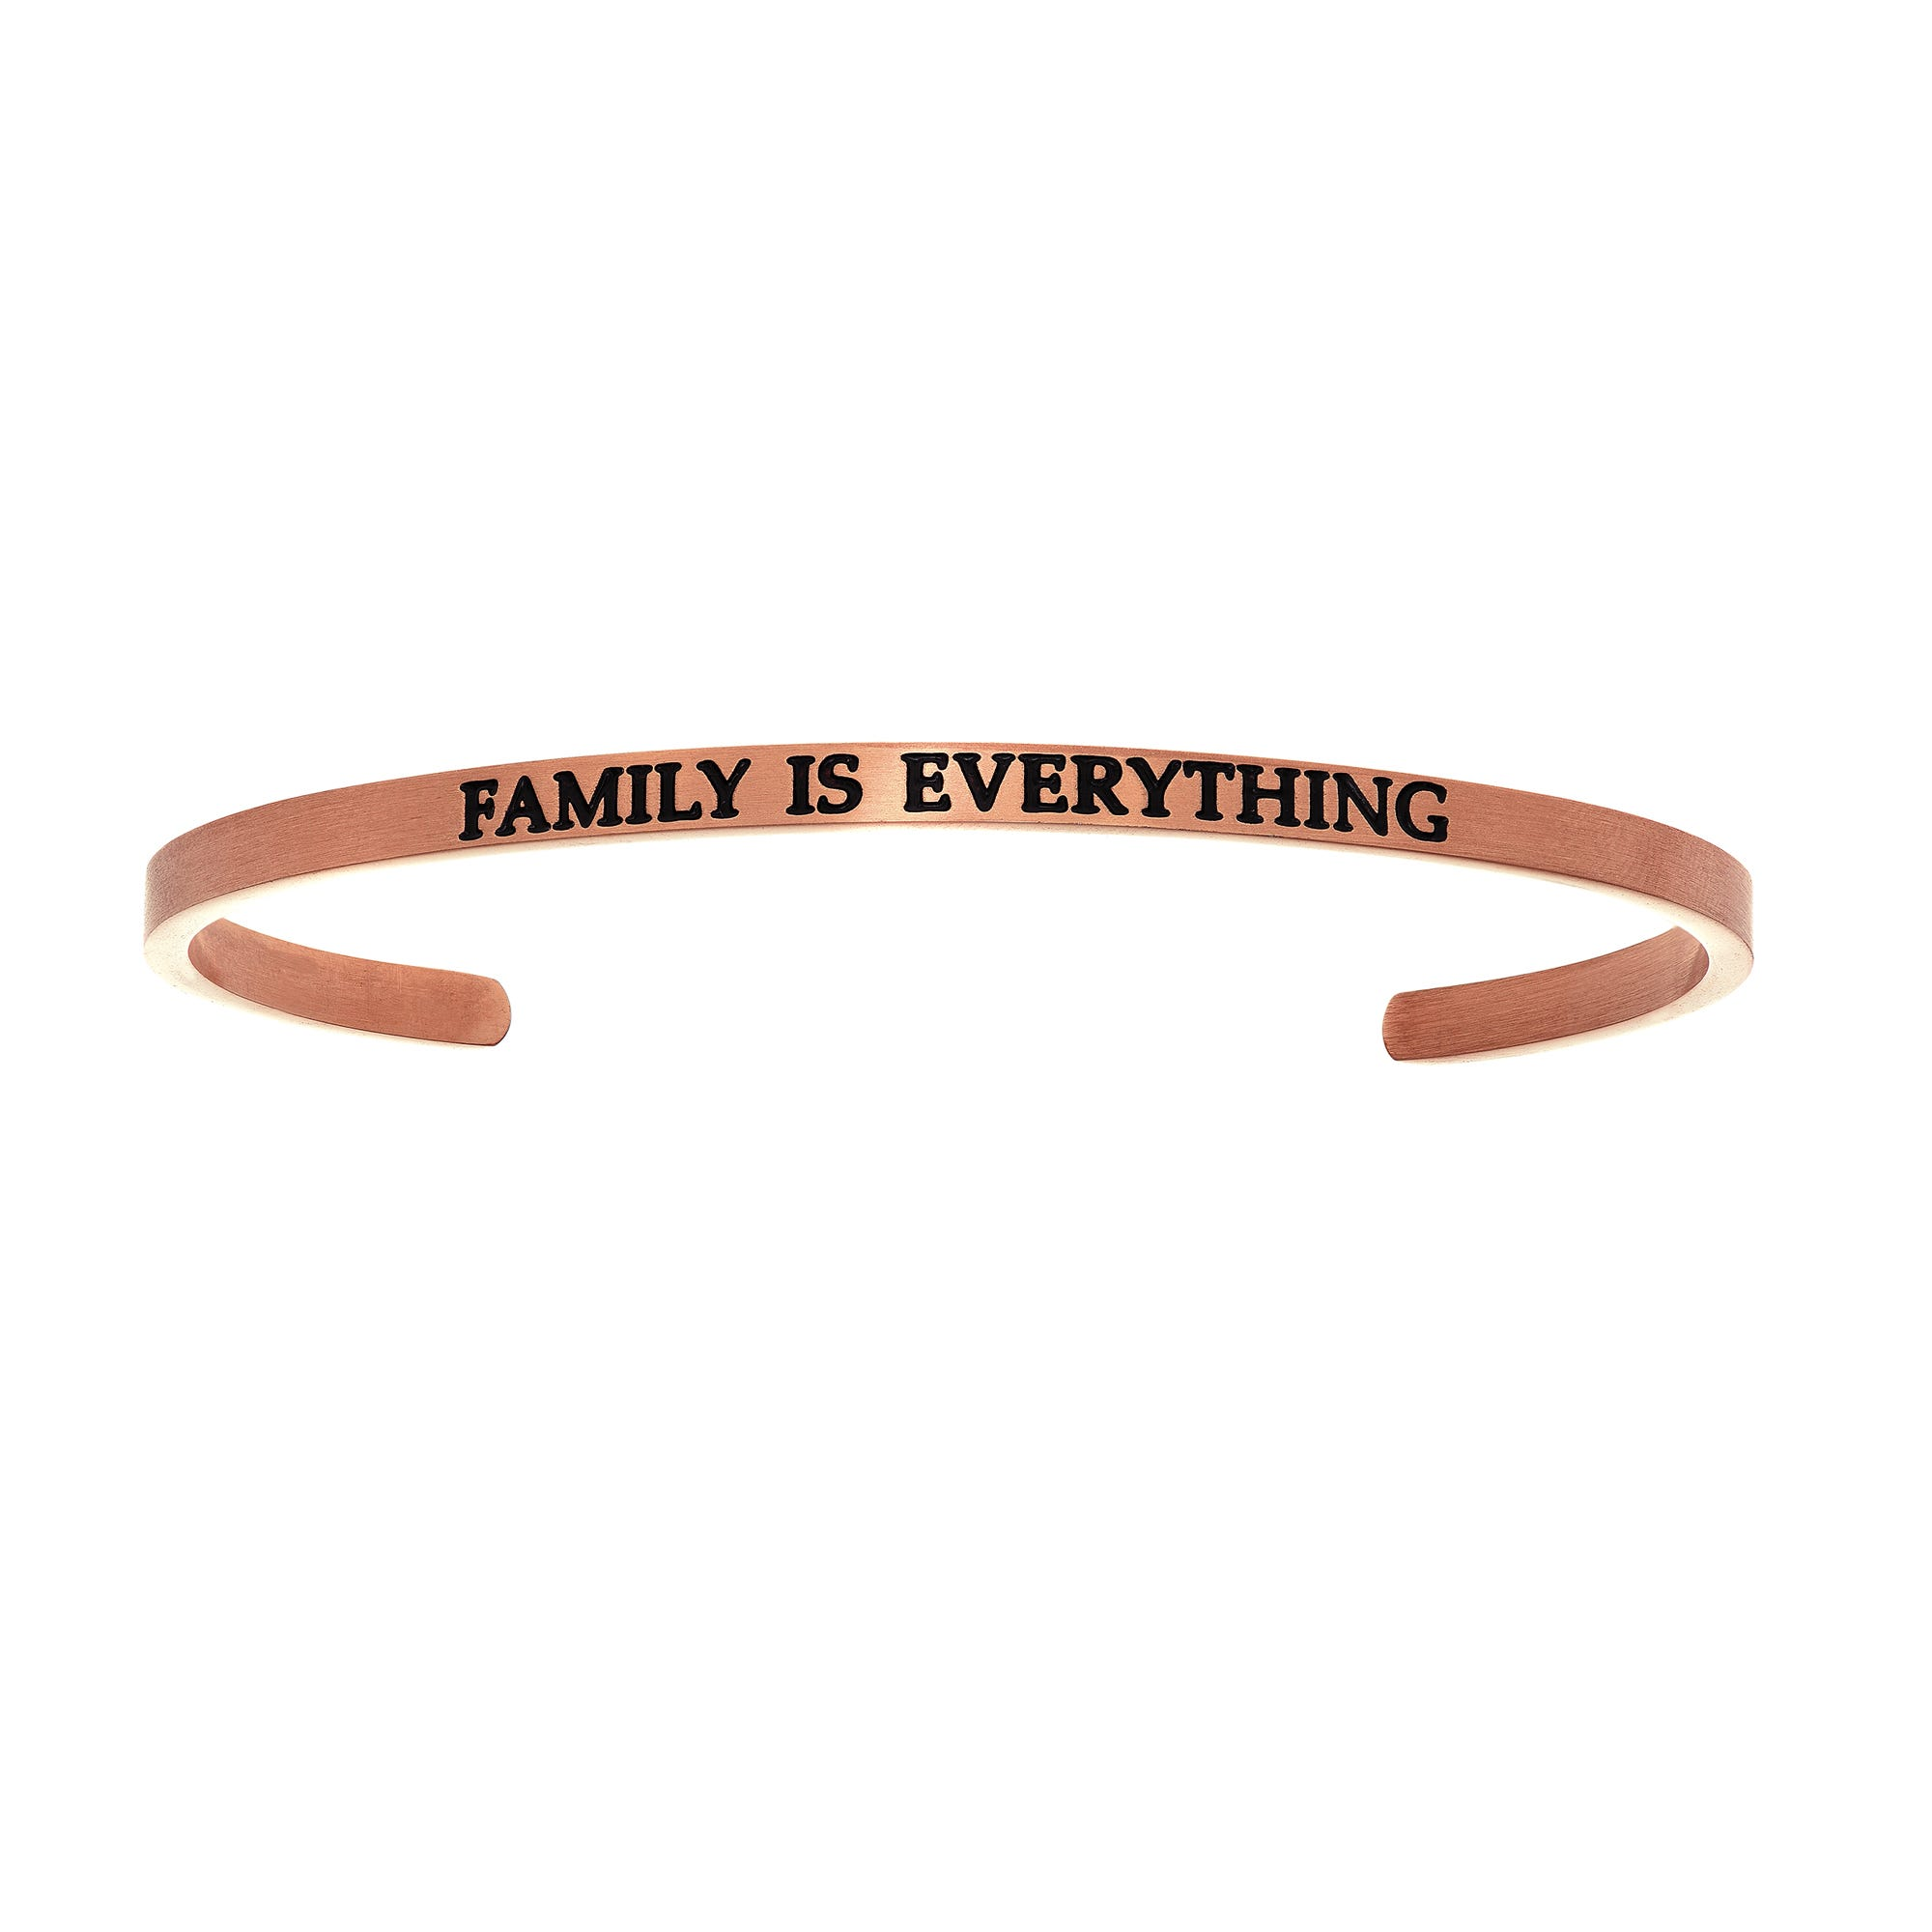 Family Is Everything. Intuitions Cuff Bracelet in Pink Stainless Steel